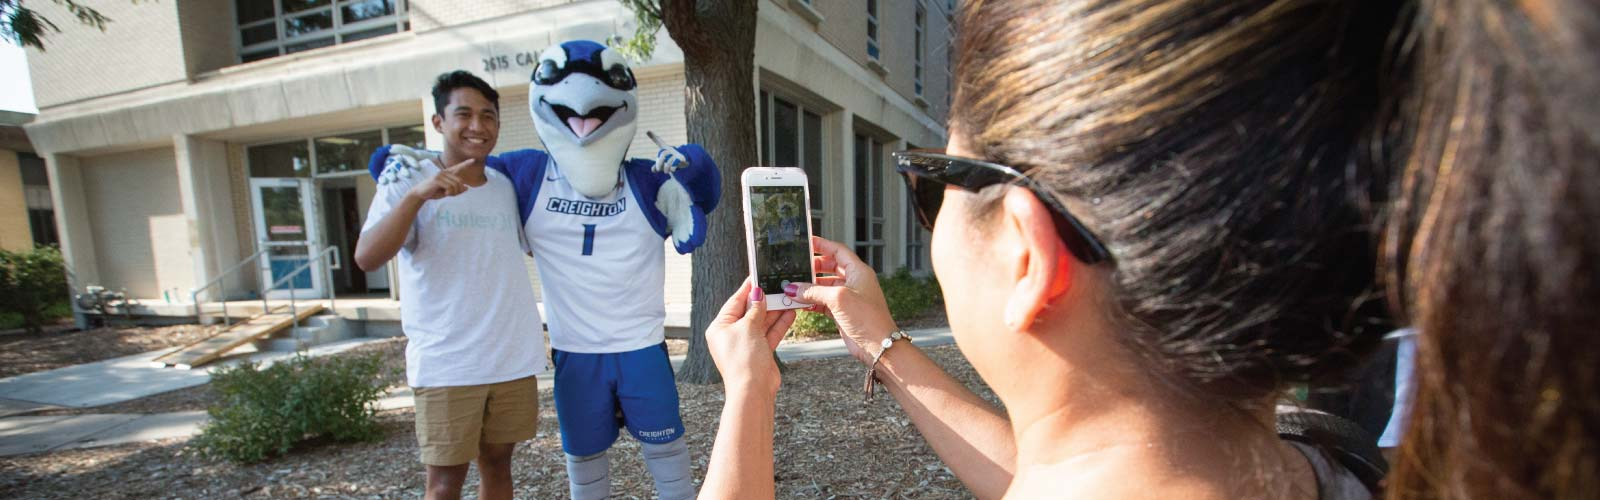 Mom Taking Photo of Student with Billy Bluejay